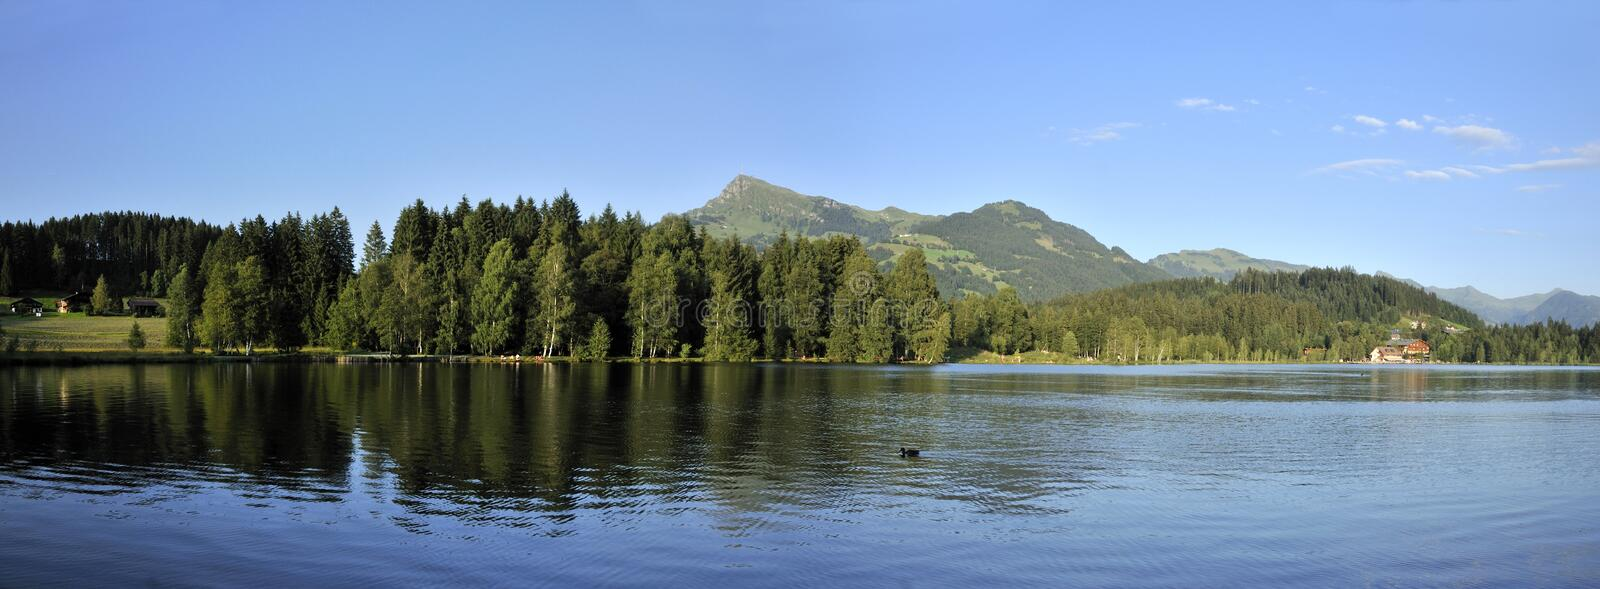 Download Schwarzsee in Austria stock image. Image of resort, mountain - 13915199